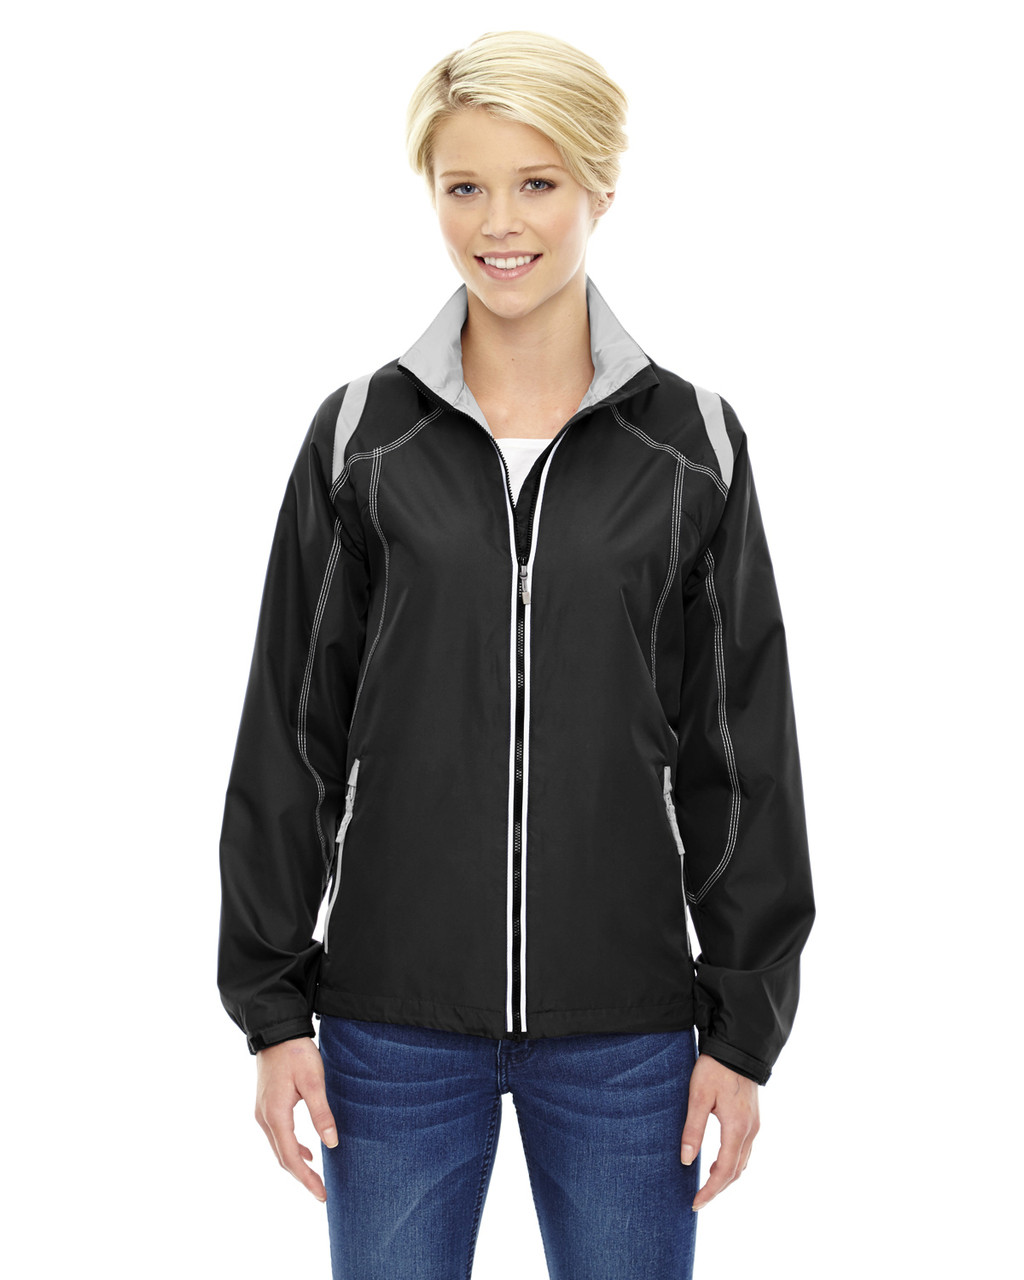 Black - 78076 North Ladies' Lightweight Colour-Block Jacket | Blankclothing.ca